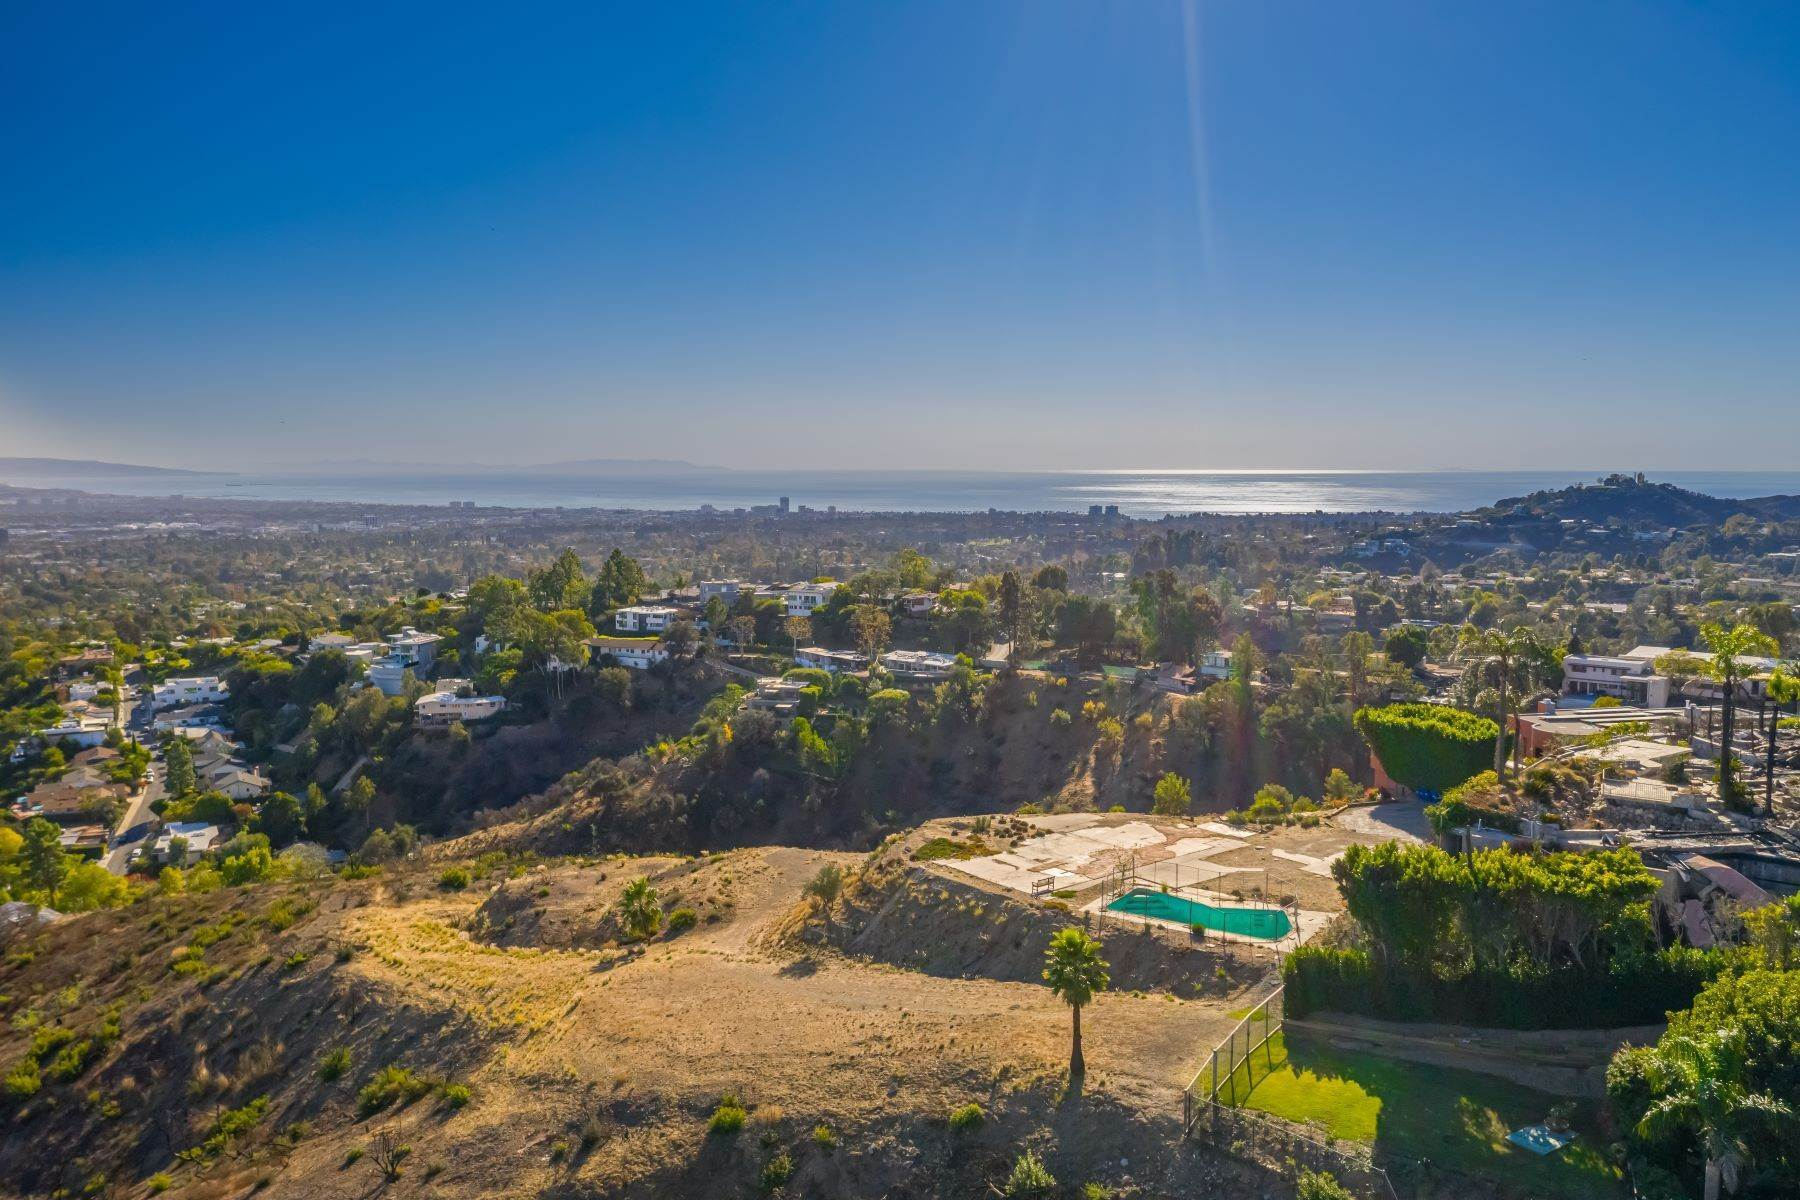 Land for Sale at Jet Liner View Lot 1204 Chickory Lane Los Angeles, California 90049 United States